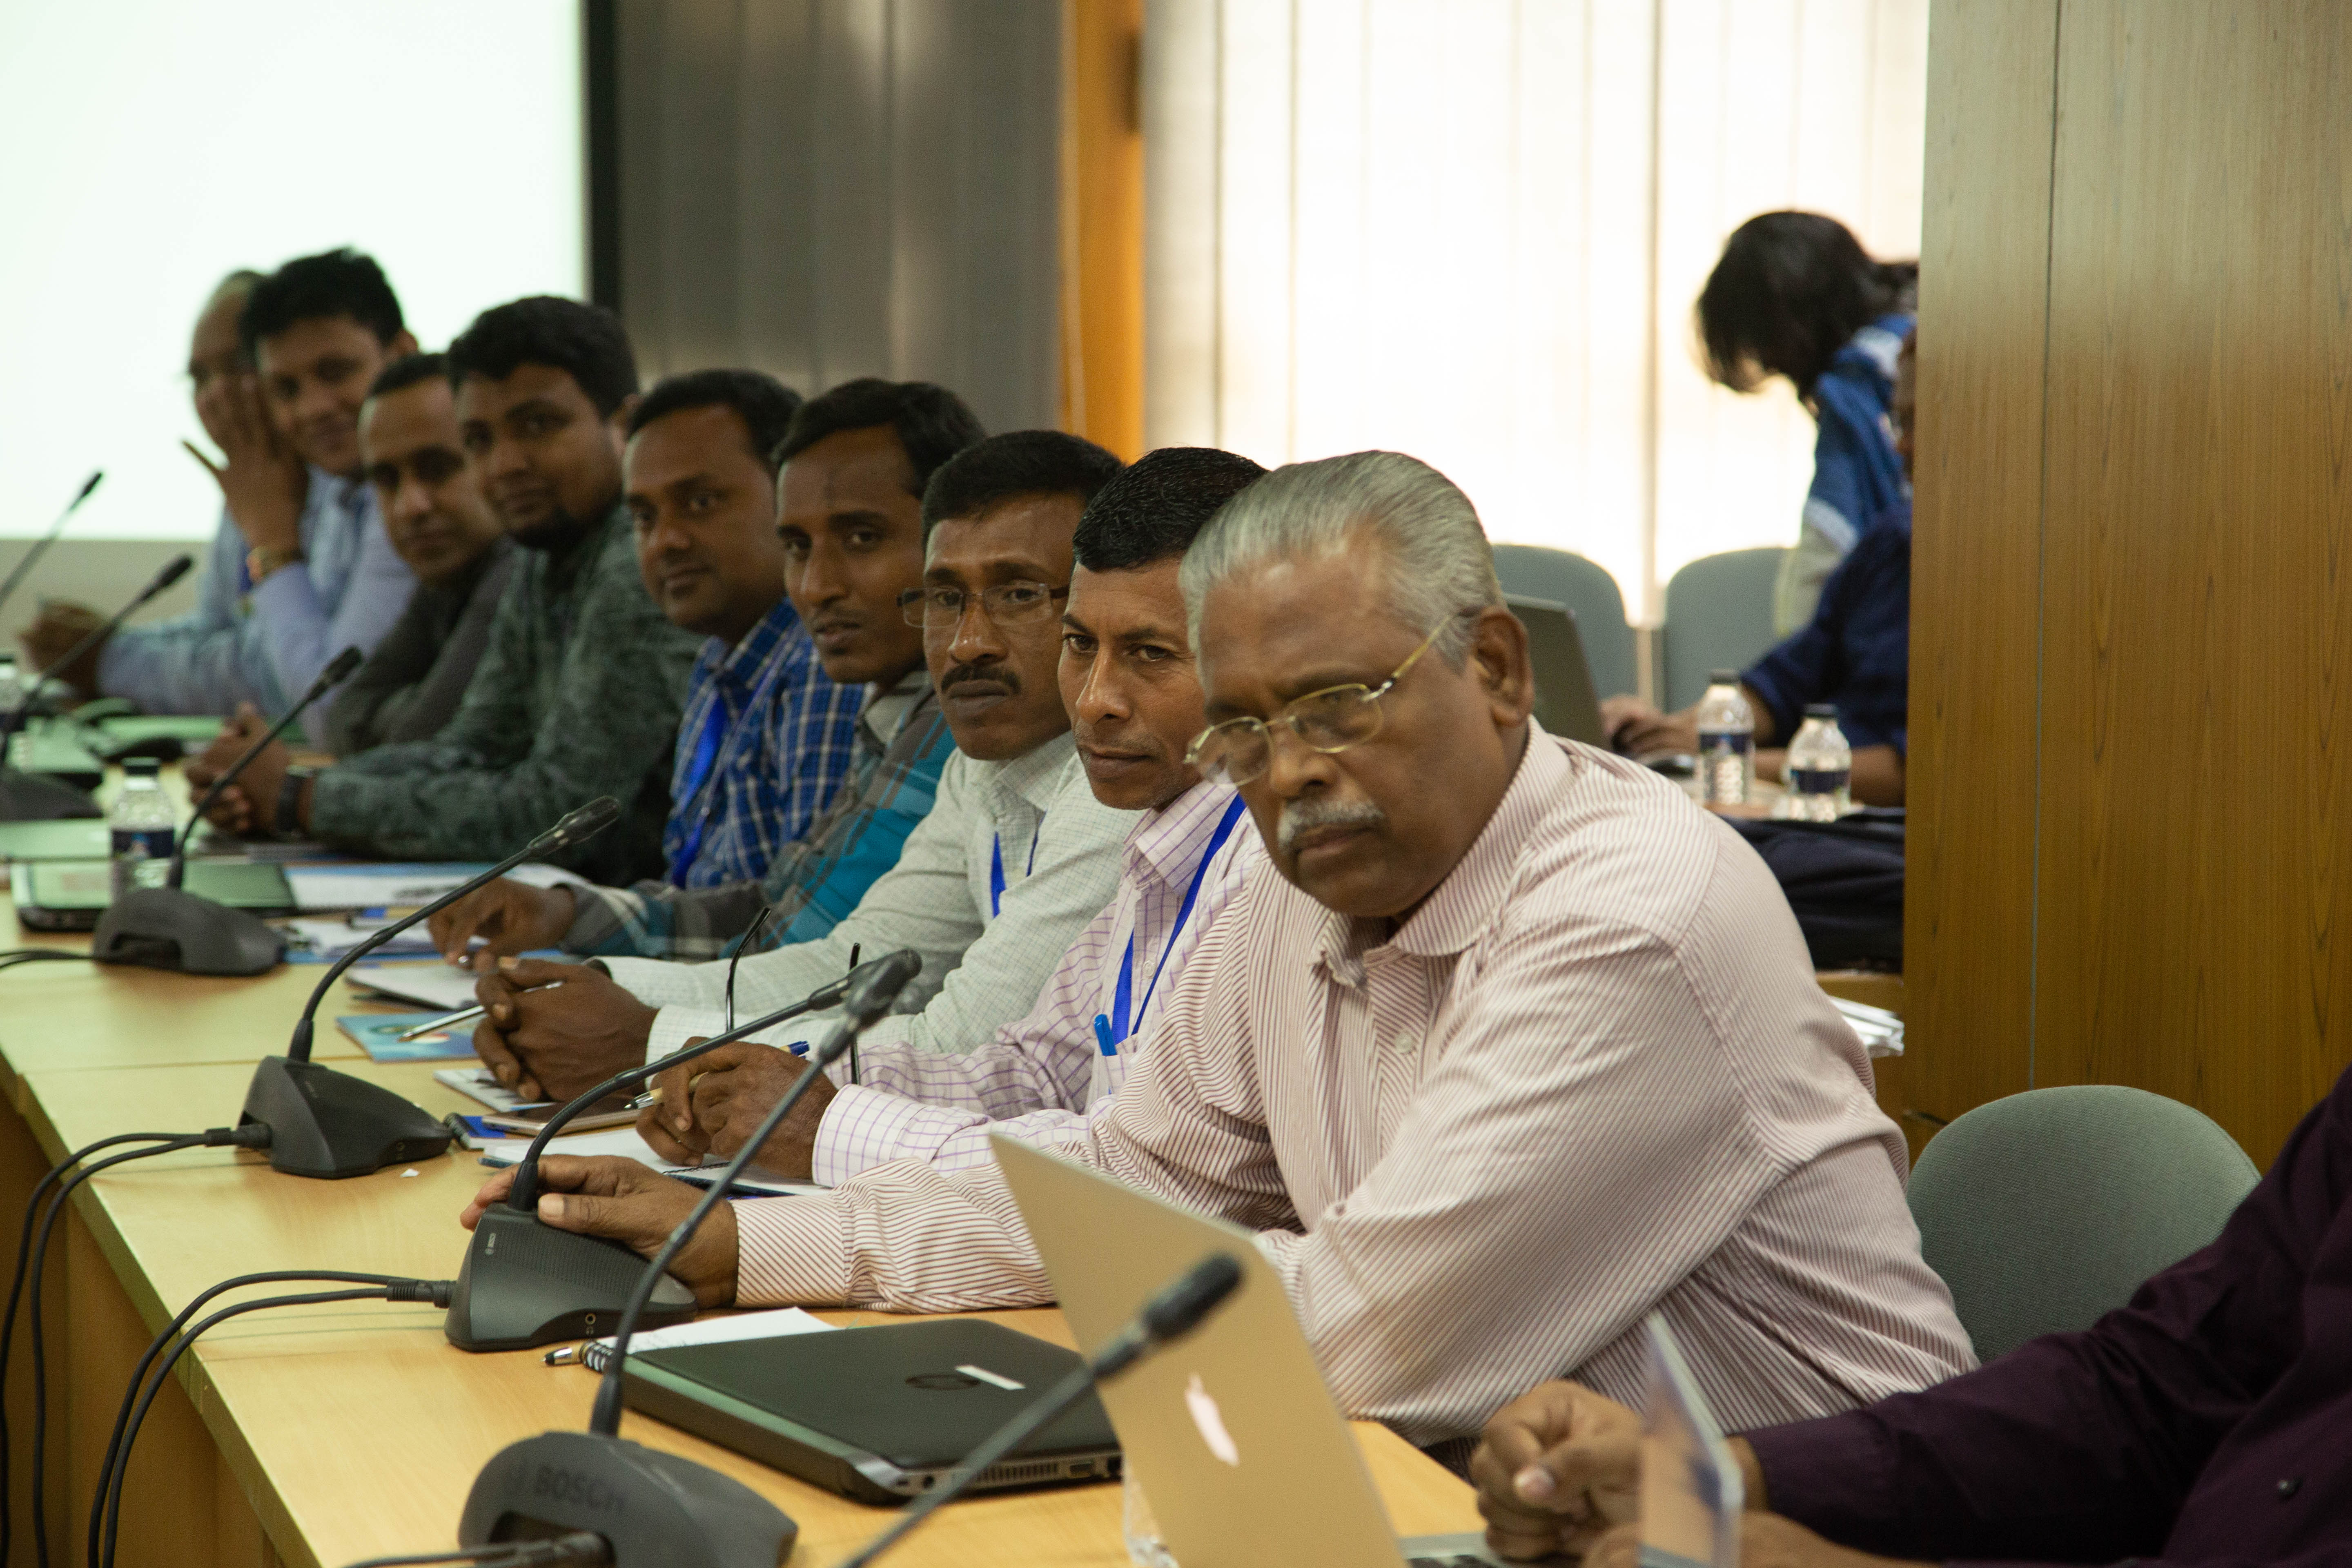 A row of Bangladeshi men of varying ages sit at a conference table with microphones and notepads in front of them. They are participants listening to a presentation during a training held at the Bangladesh Meteorological Department in Dhaka in October of 2019. Photographer Jacquelyn Turner, ACToday/IRI.